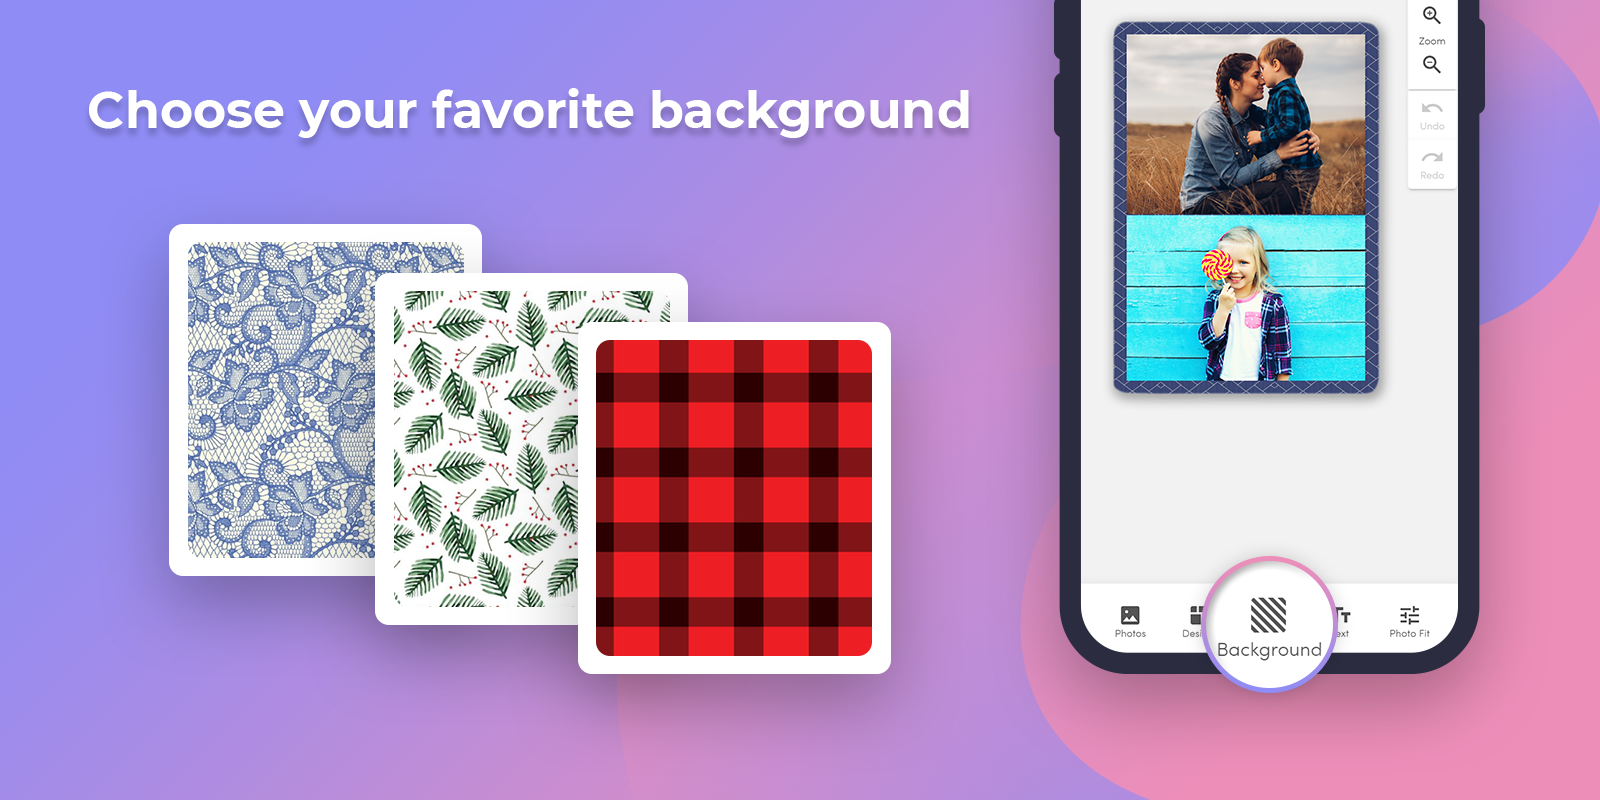 Optional: Choose your favorite background, or add text